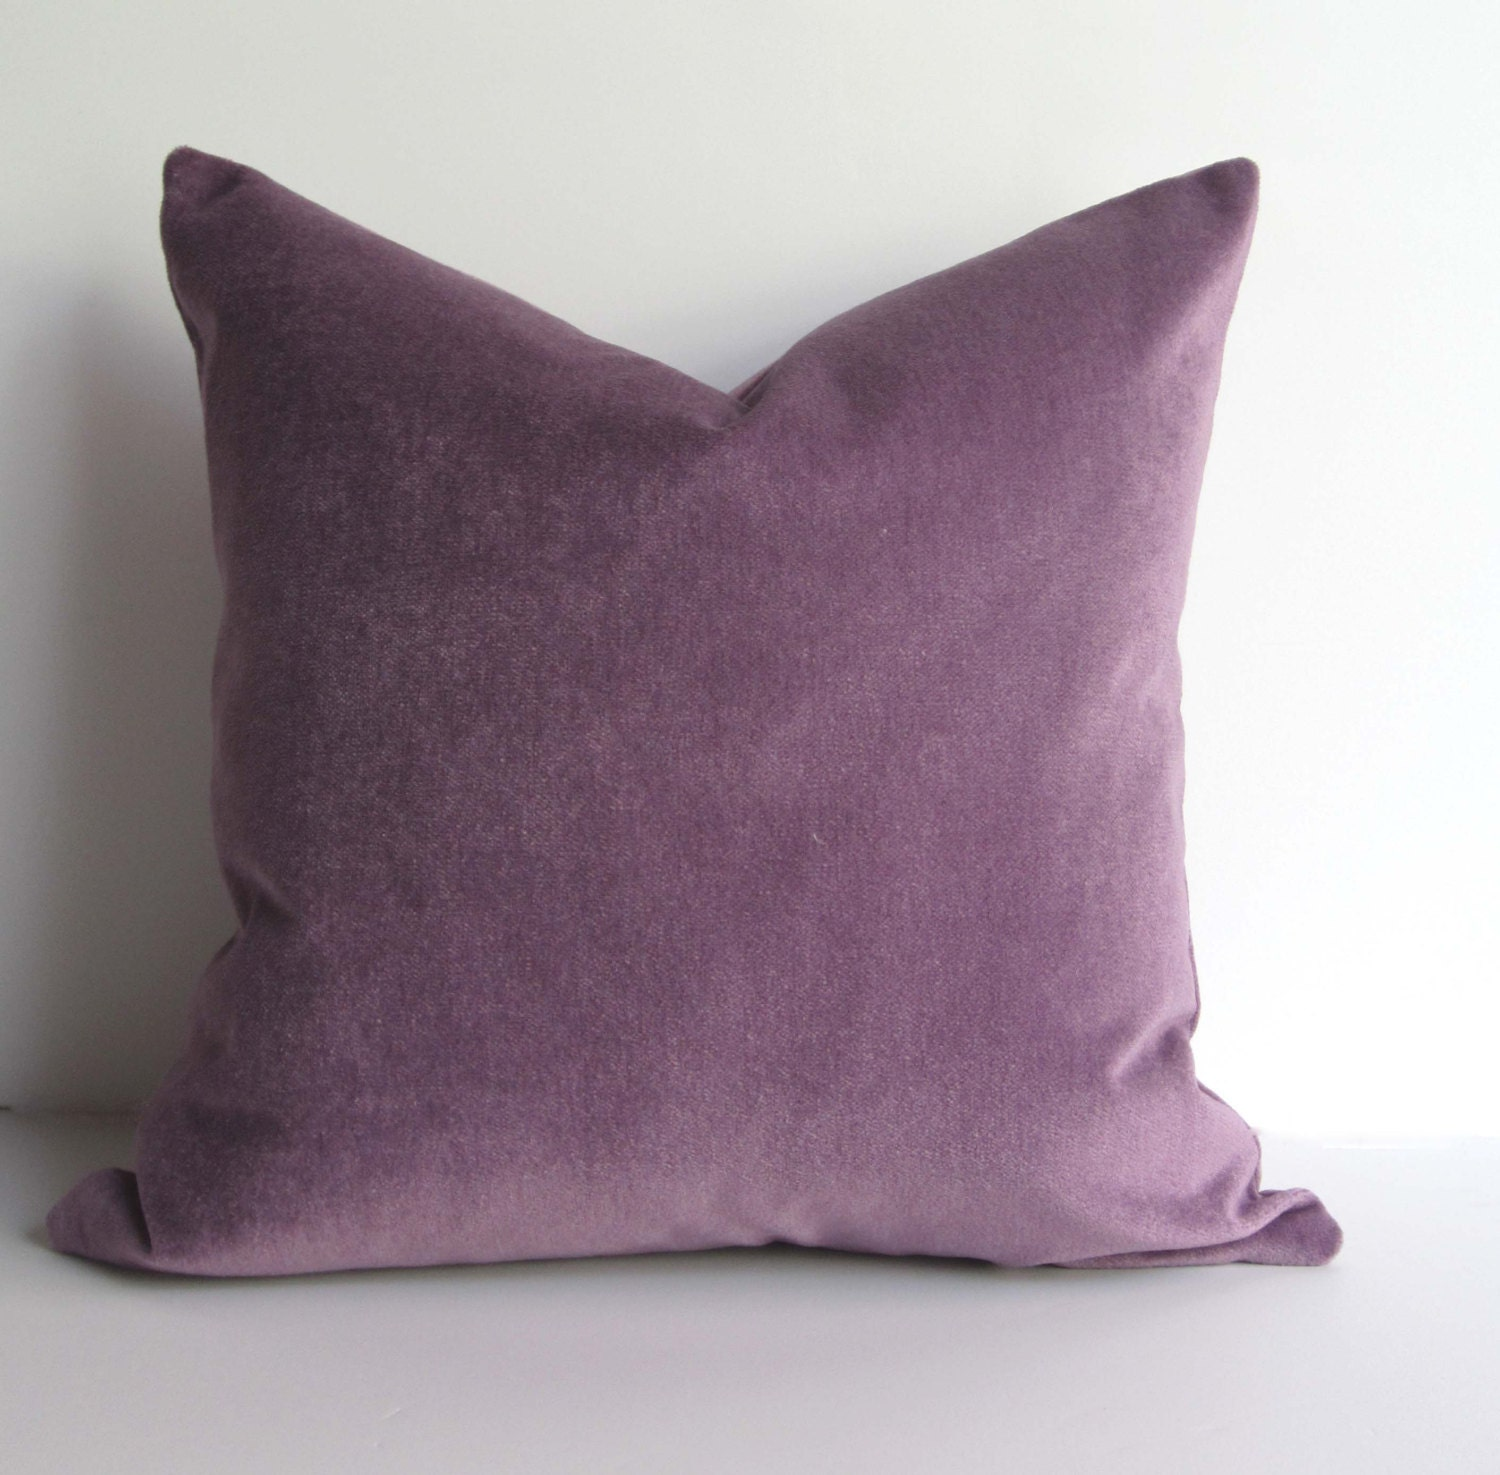 Velvet Decorative Pillow Covers : Lilac Velvet Pillow Decorative Pillow Cover 20 inch